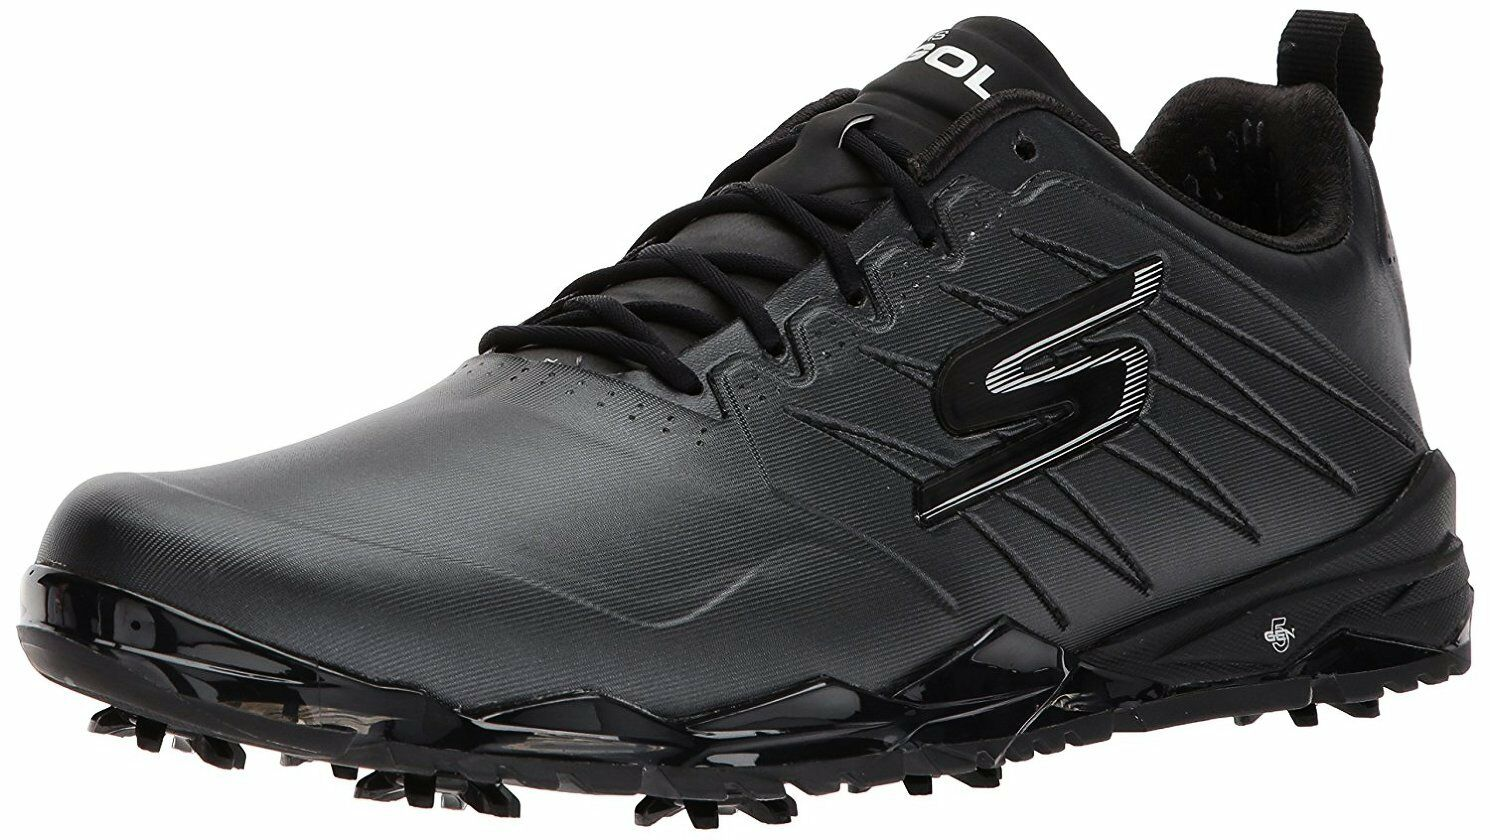 Skechers Men's Go Golf Focus 2 Walking Shoe - Choose Price reduction The most popular shoes for men and women